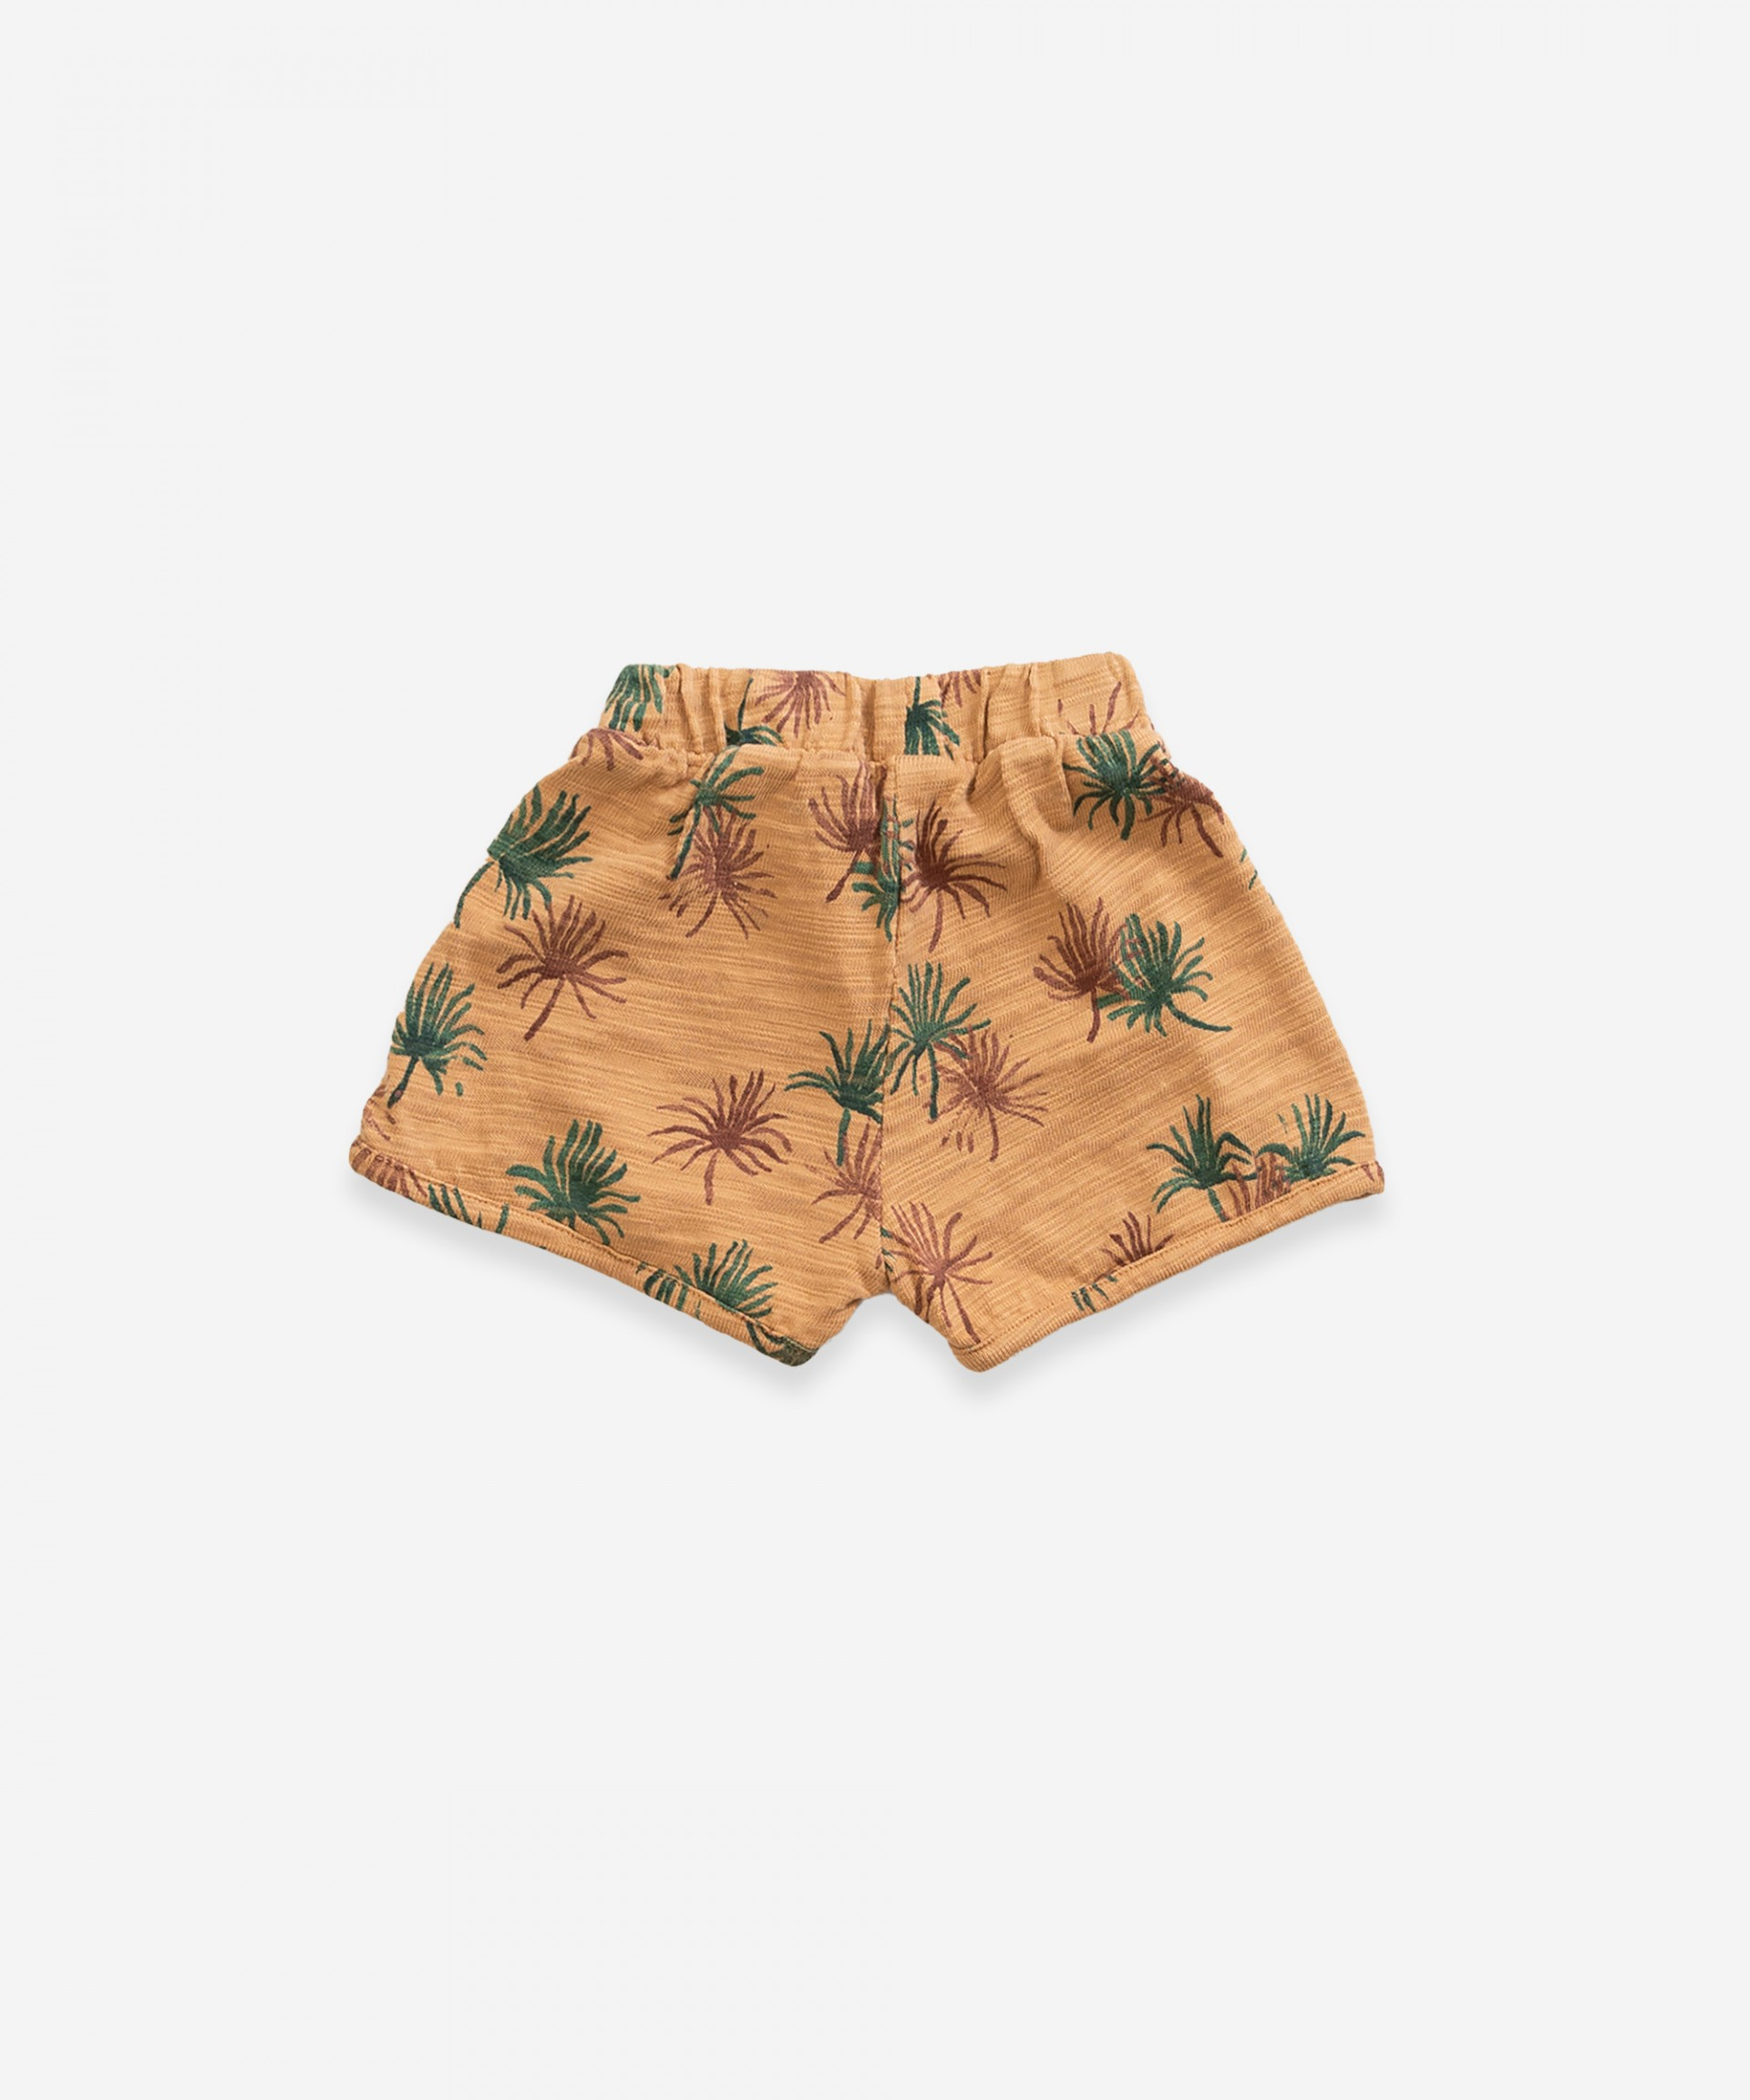 Cotton shorts with print | Weaving